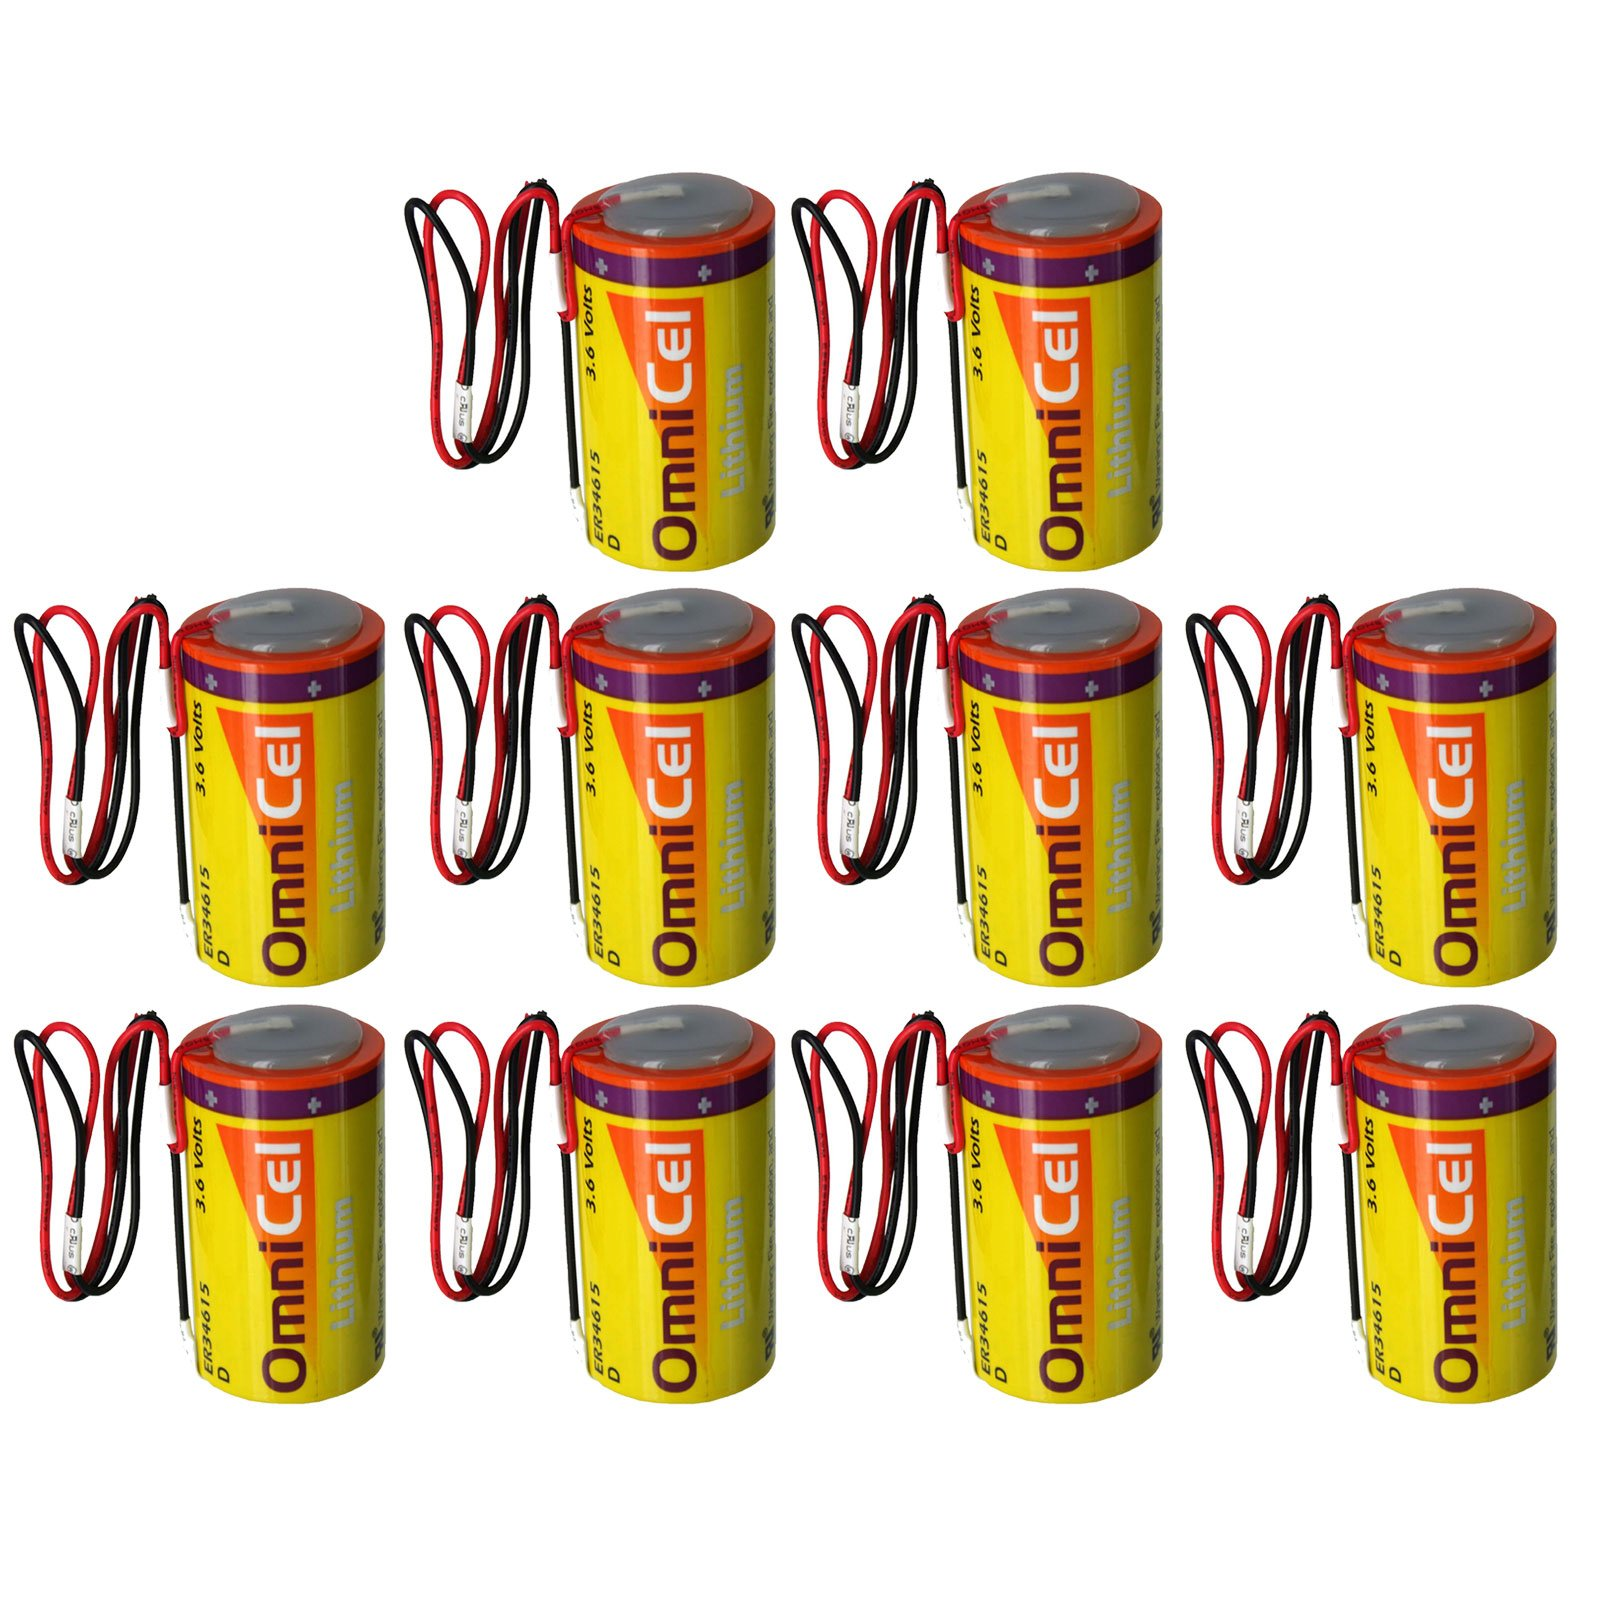 10x OmniCel ER34615 3.6V 19Ah Sz D Lithium Battery Wire Leads Utility Telematic